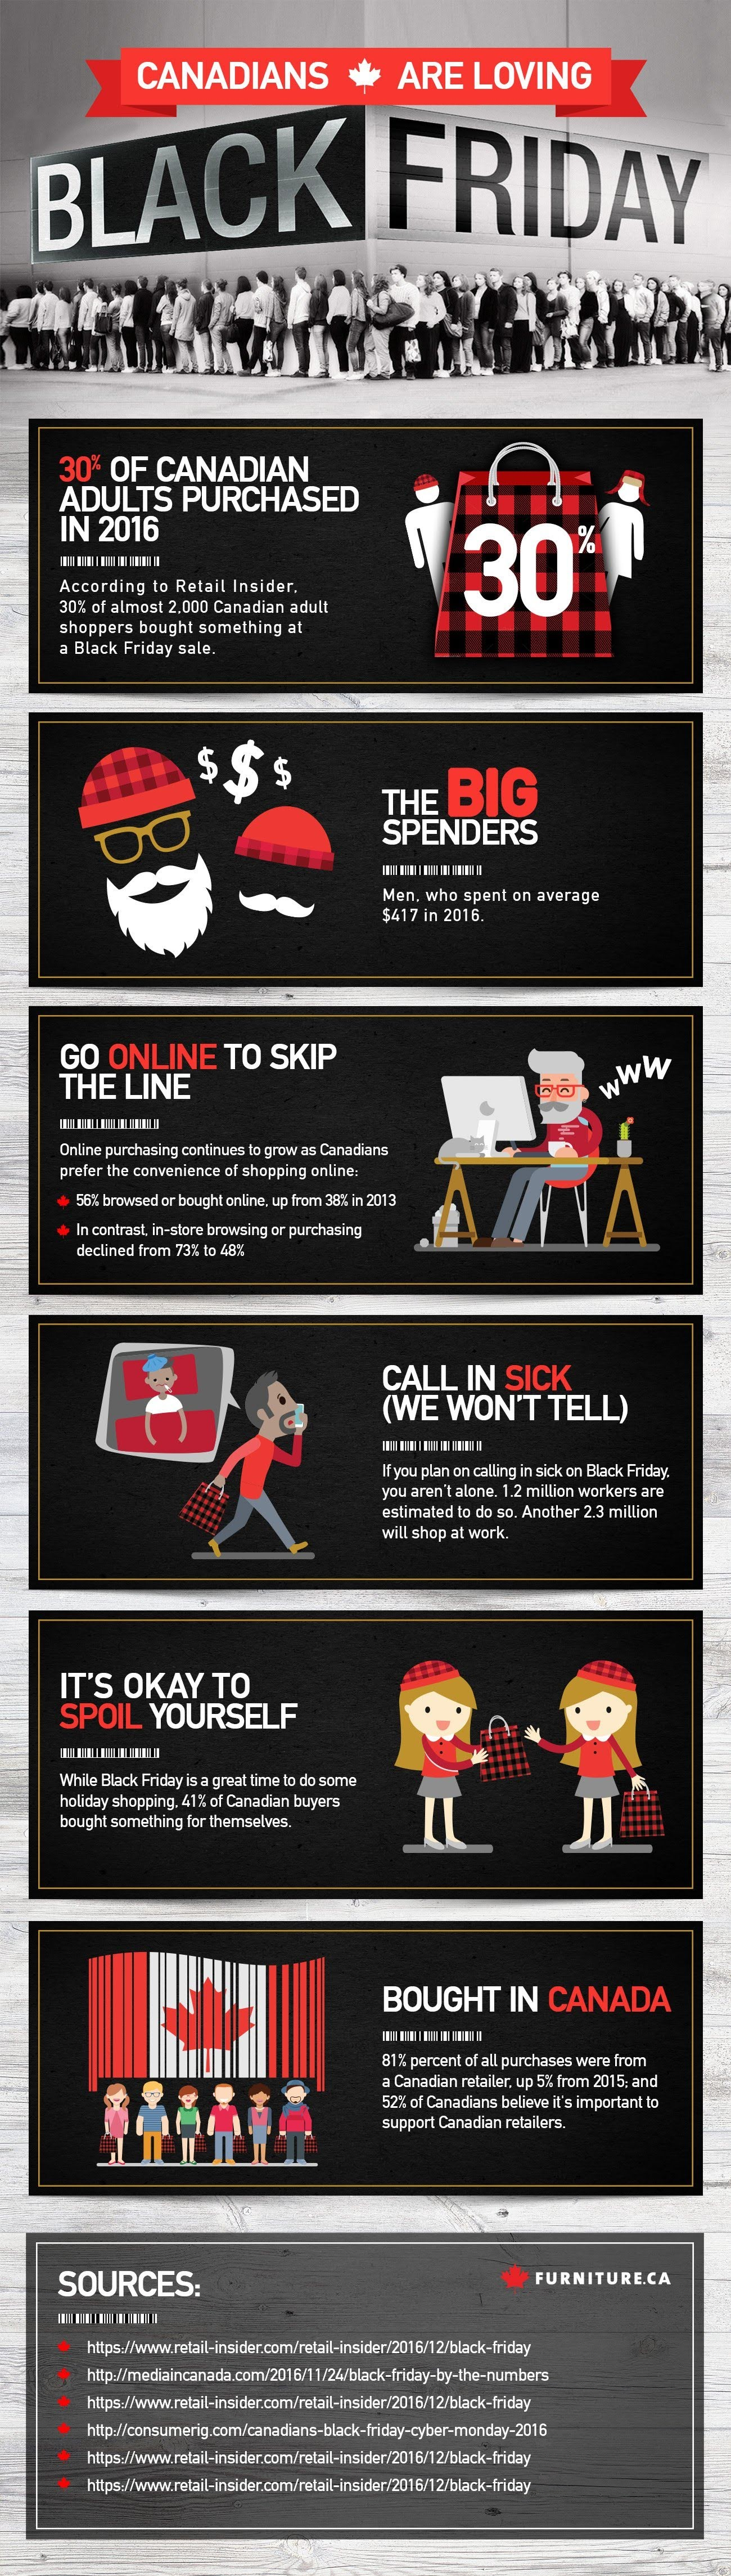 Black Friday : 6 Insights Into Canadian Buying Behaviour #infographic